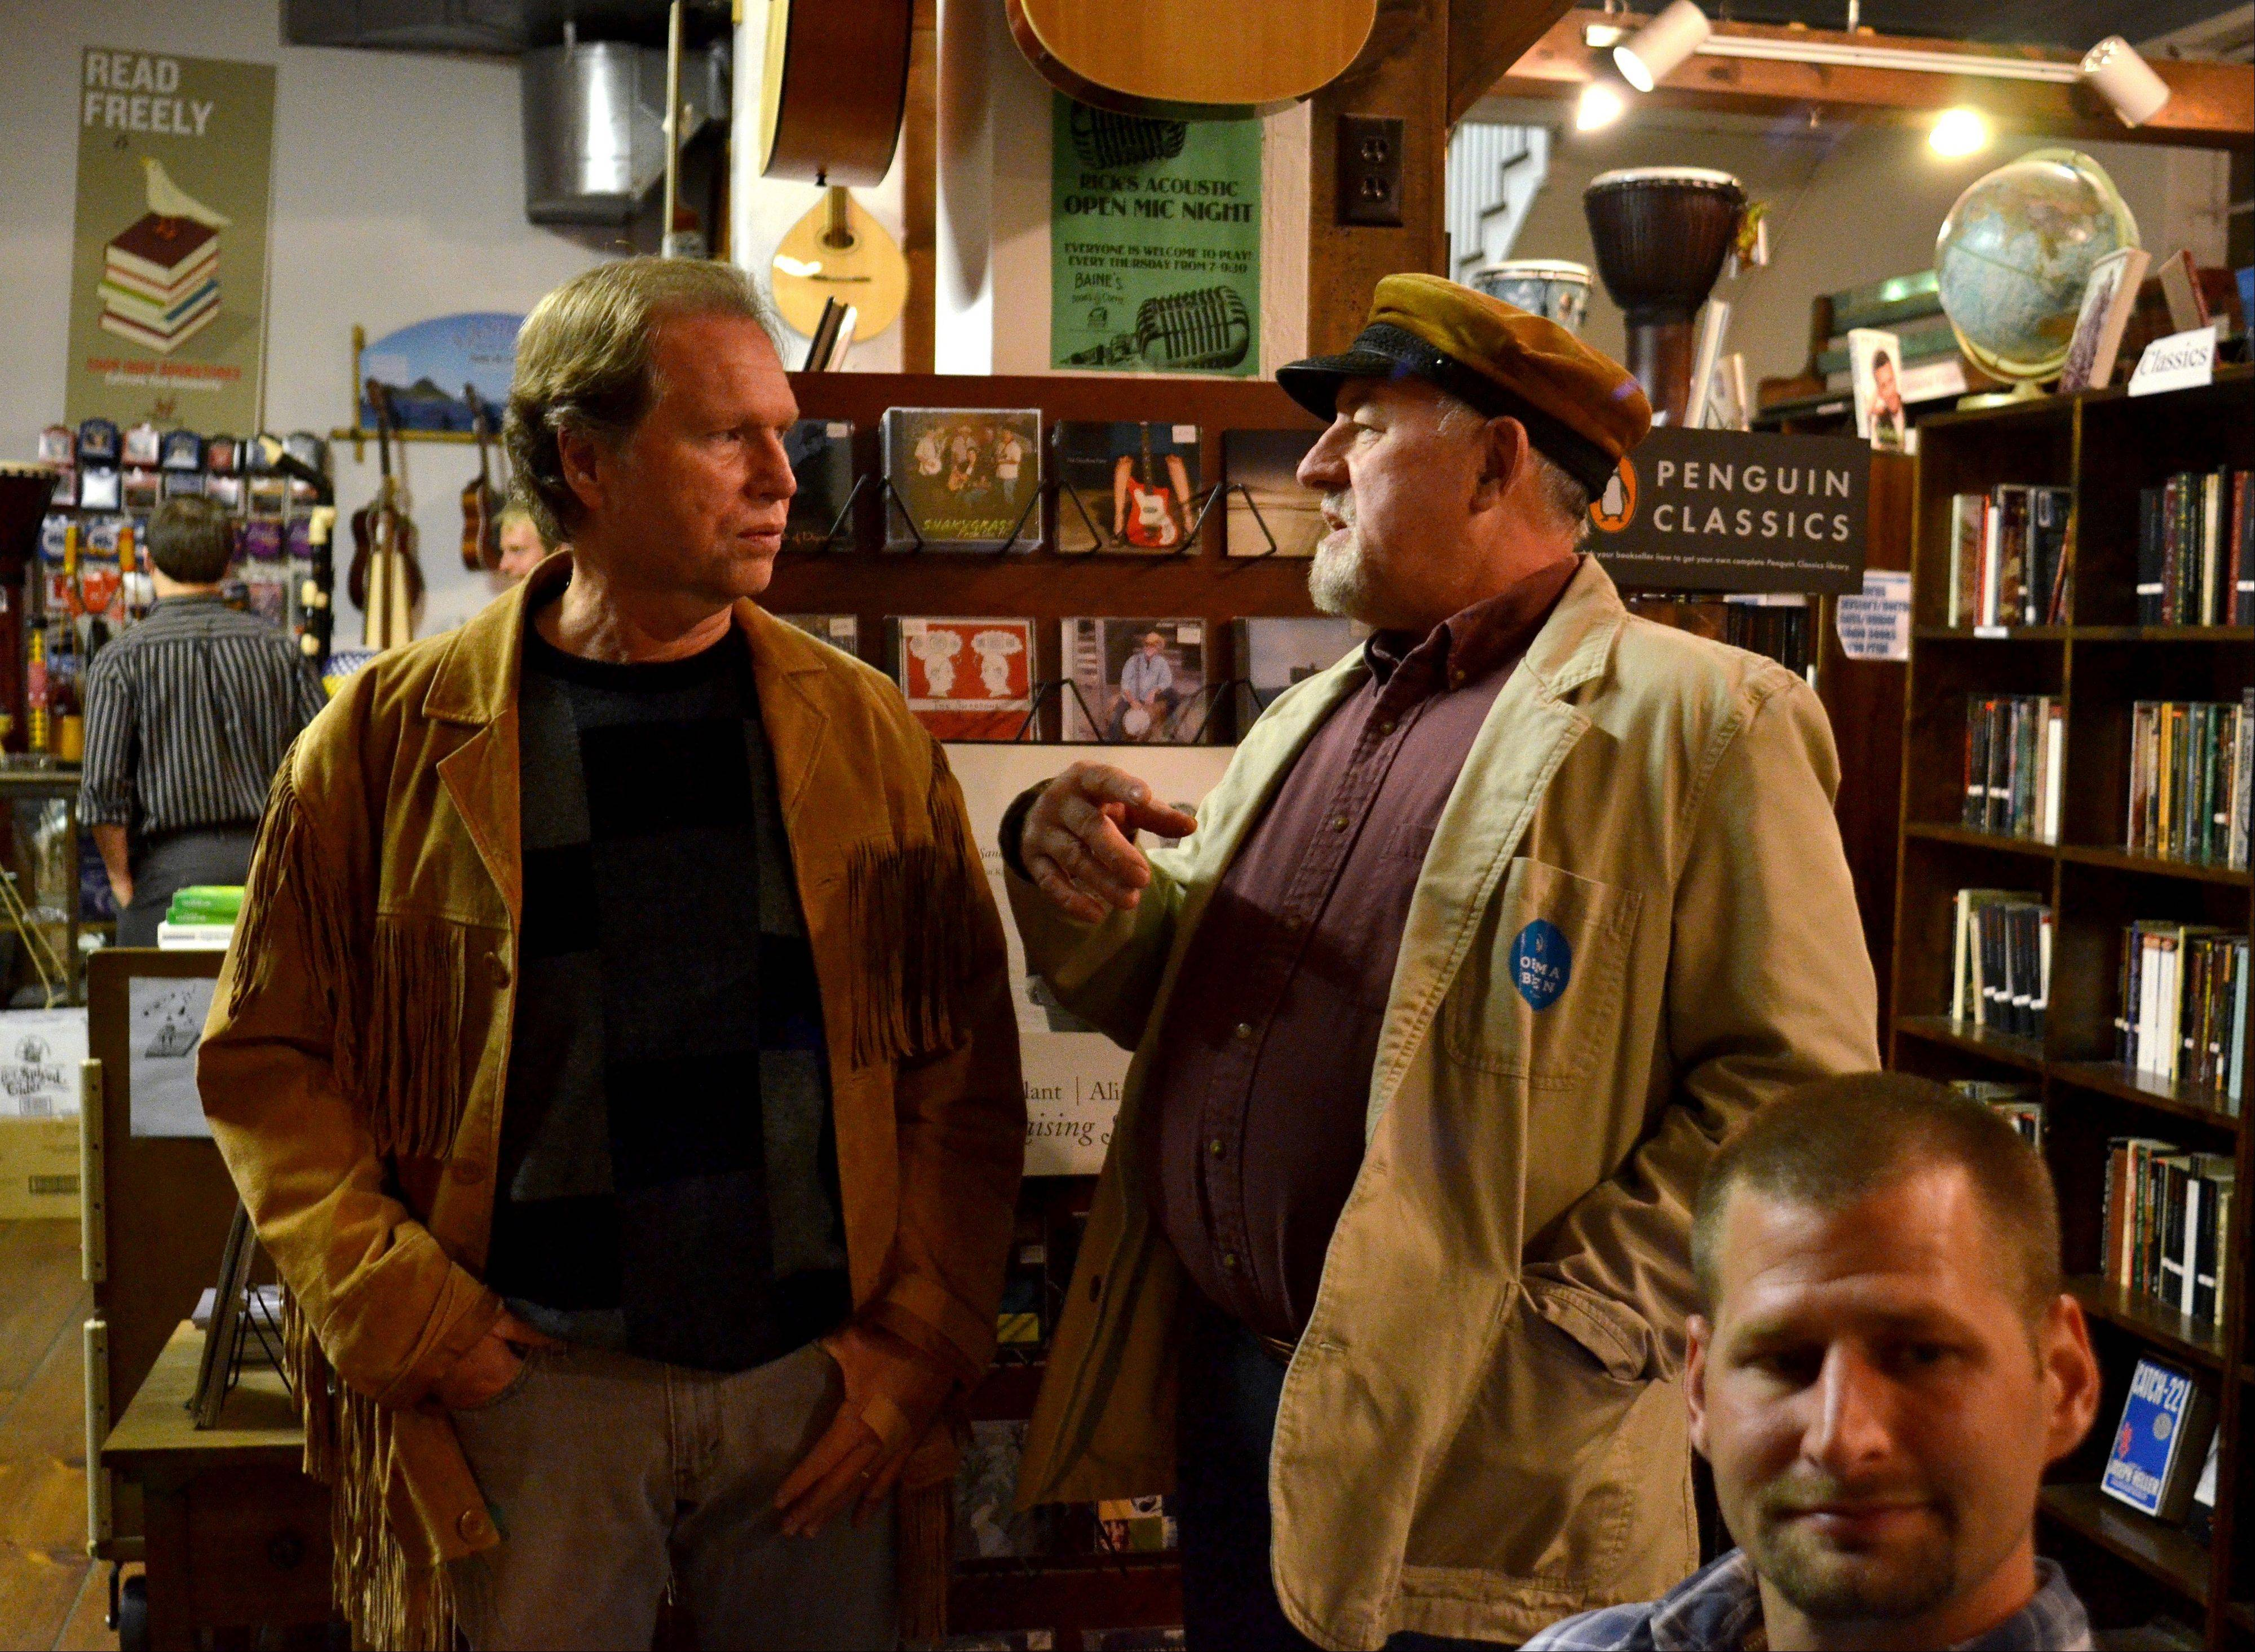 Jim Elder, center, talks with a friend during open mic night at Baine�s Books in Appomattox, Va.